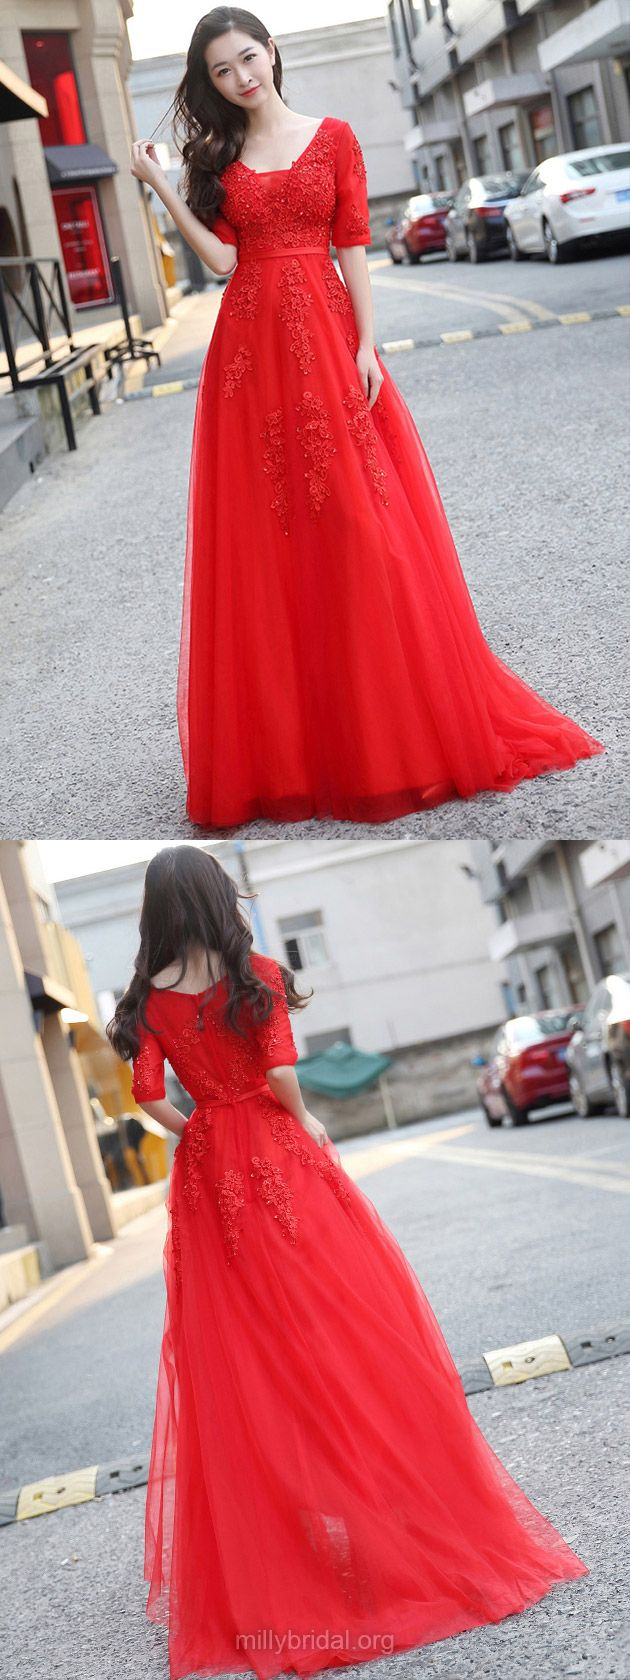 Princess prom dresses red prom gowns vnecklong party dresses